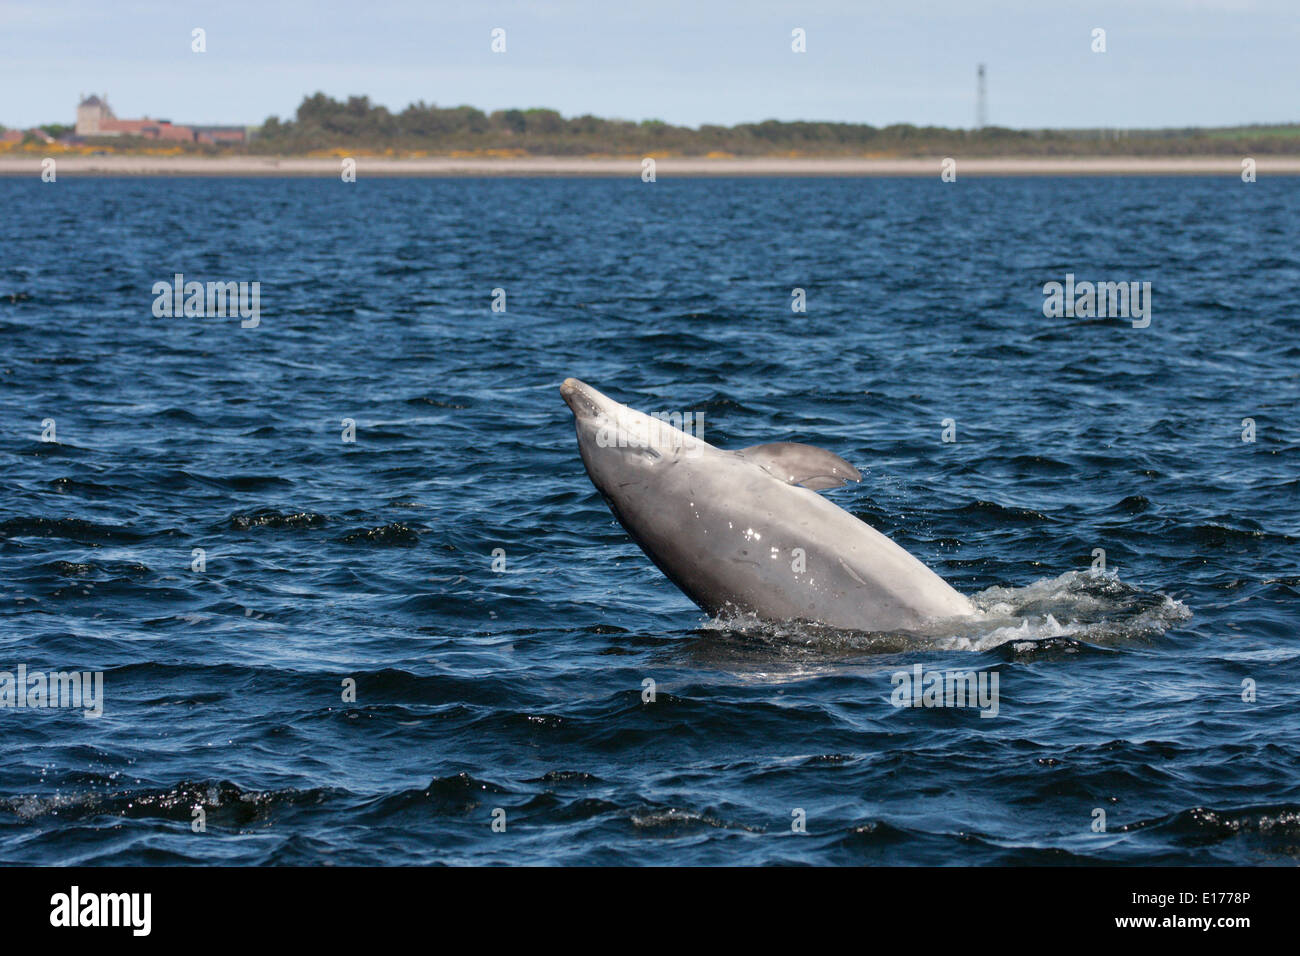 Bottlenose dolphin (Tursiops truncatus) breaching, jumping, leaping, Chanonry Point, Moray Firth, Scotland, UK - Stock Image